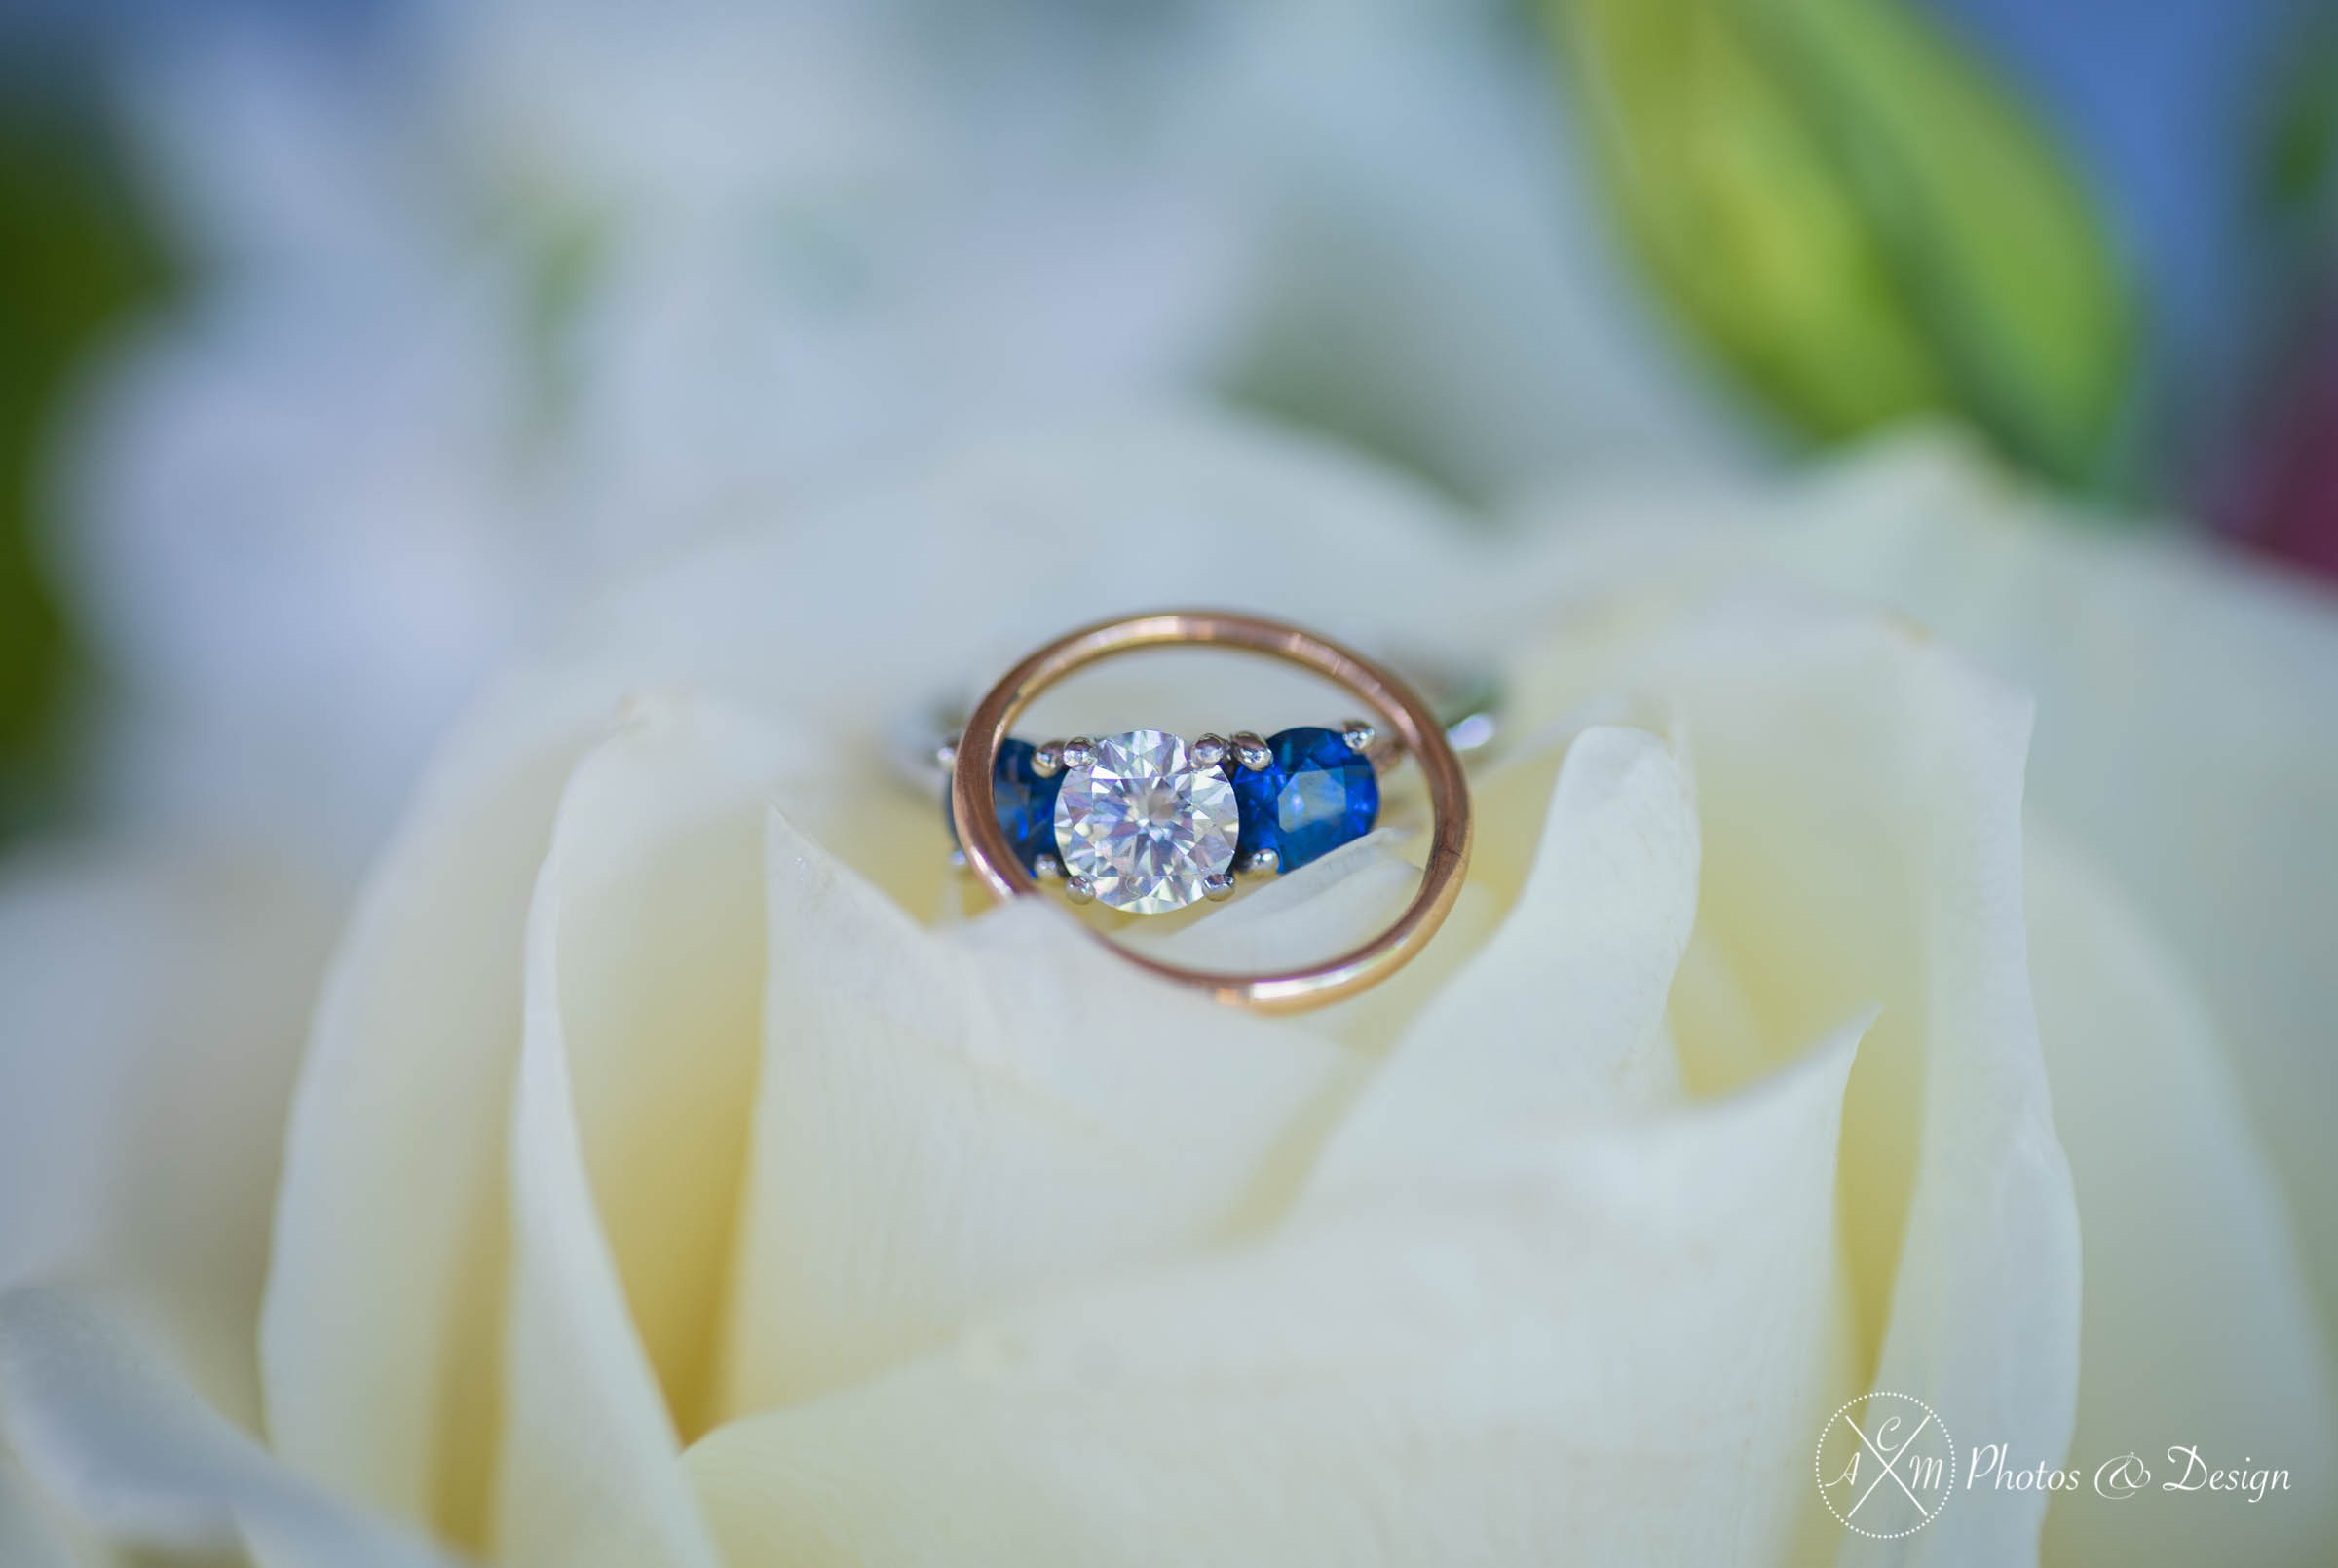 This is an example of one of our photos with a macro lens. Macro lenses are amazing at catching the details of something small like rings but you will see that quickly other items begin to fall out of focus i.e. the flower that these are sitting on. This is a great look for something like an engagement ring because it helps your eye focus on the ring.